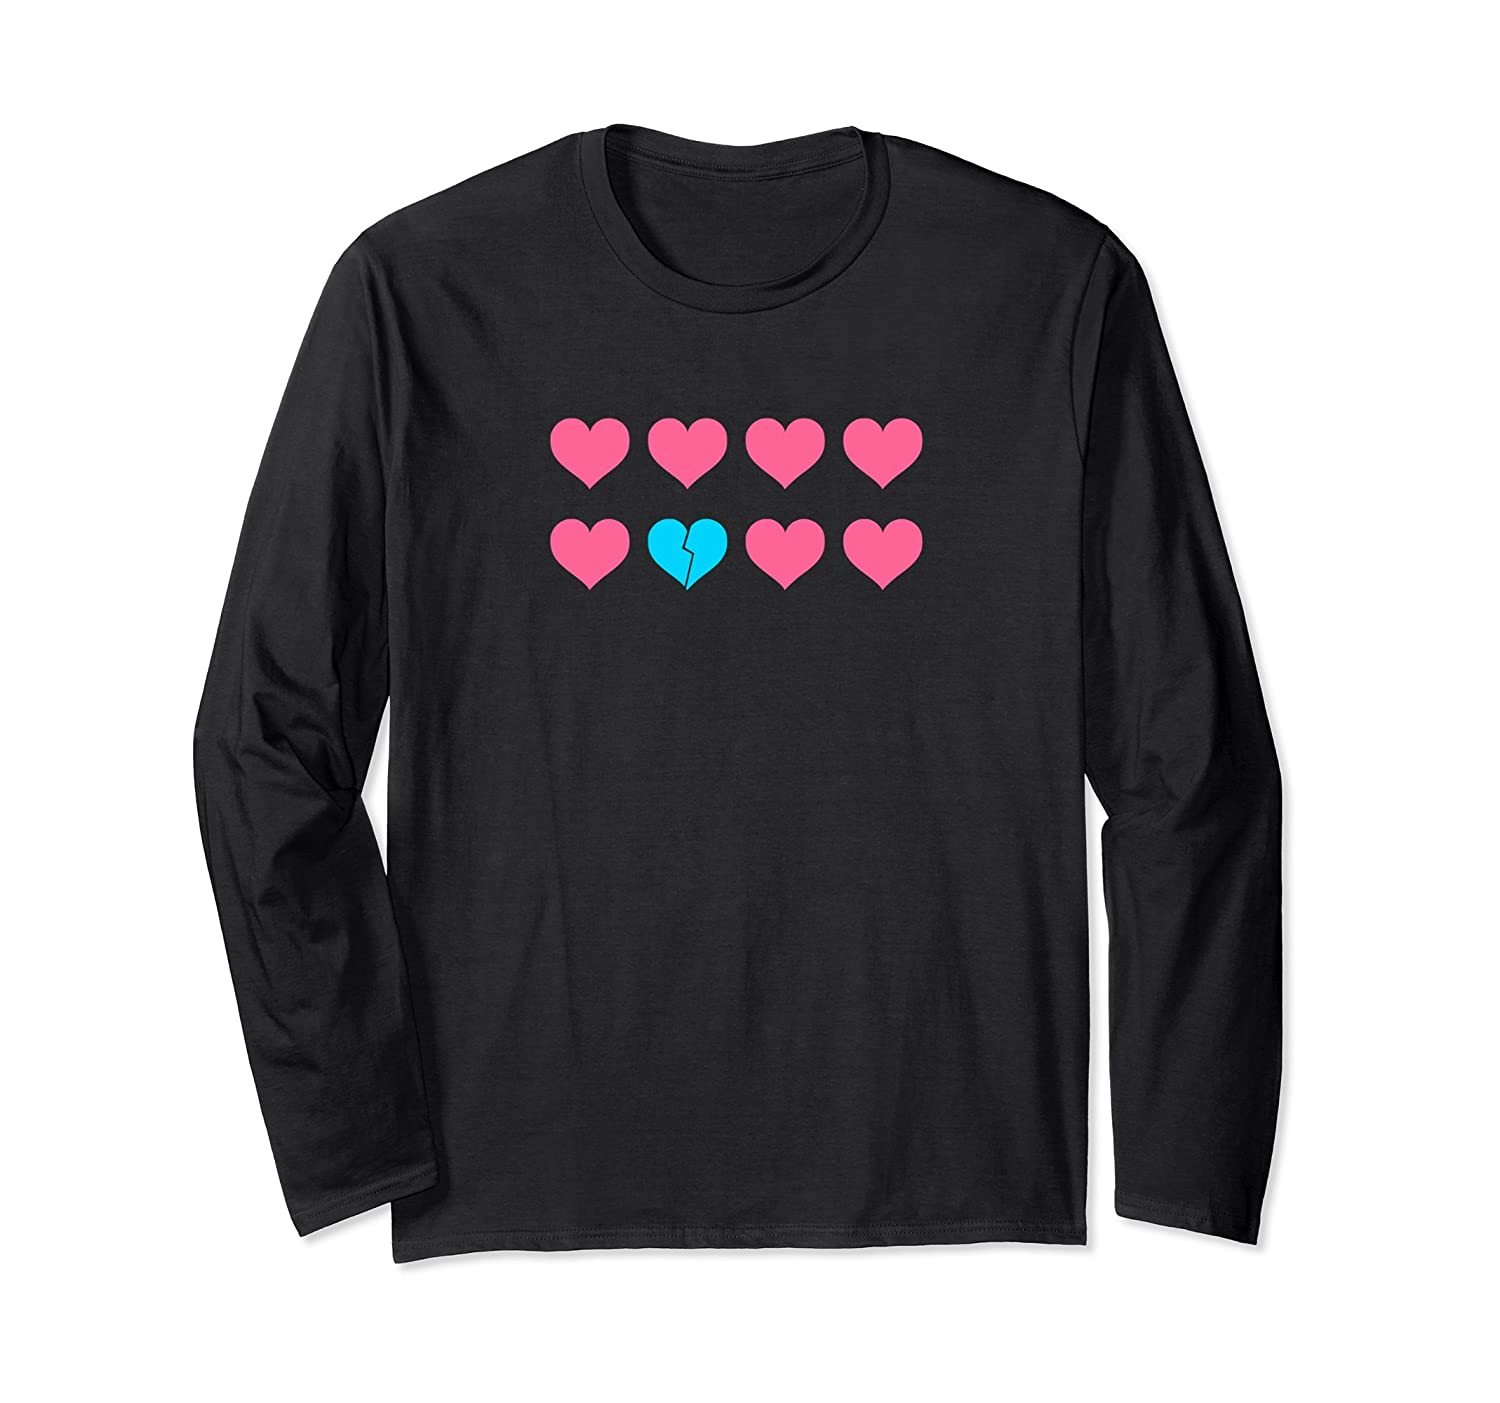 National Infertility Awareness Support IVF Pink Love TShirt-ah my shirt one gift